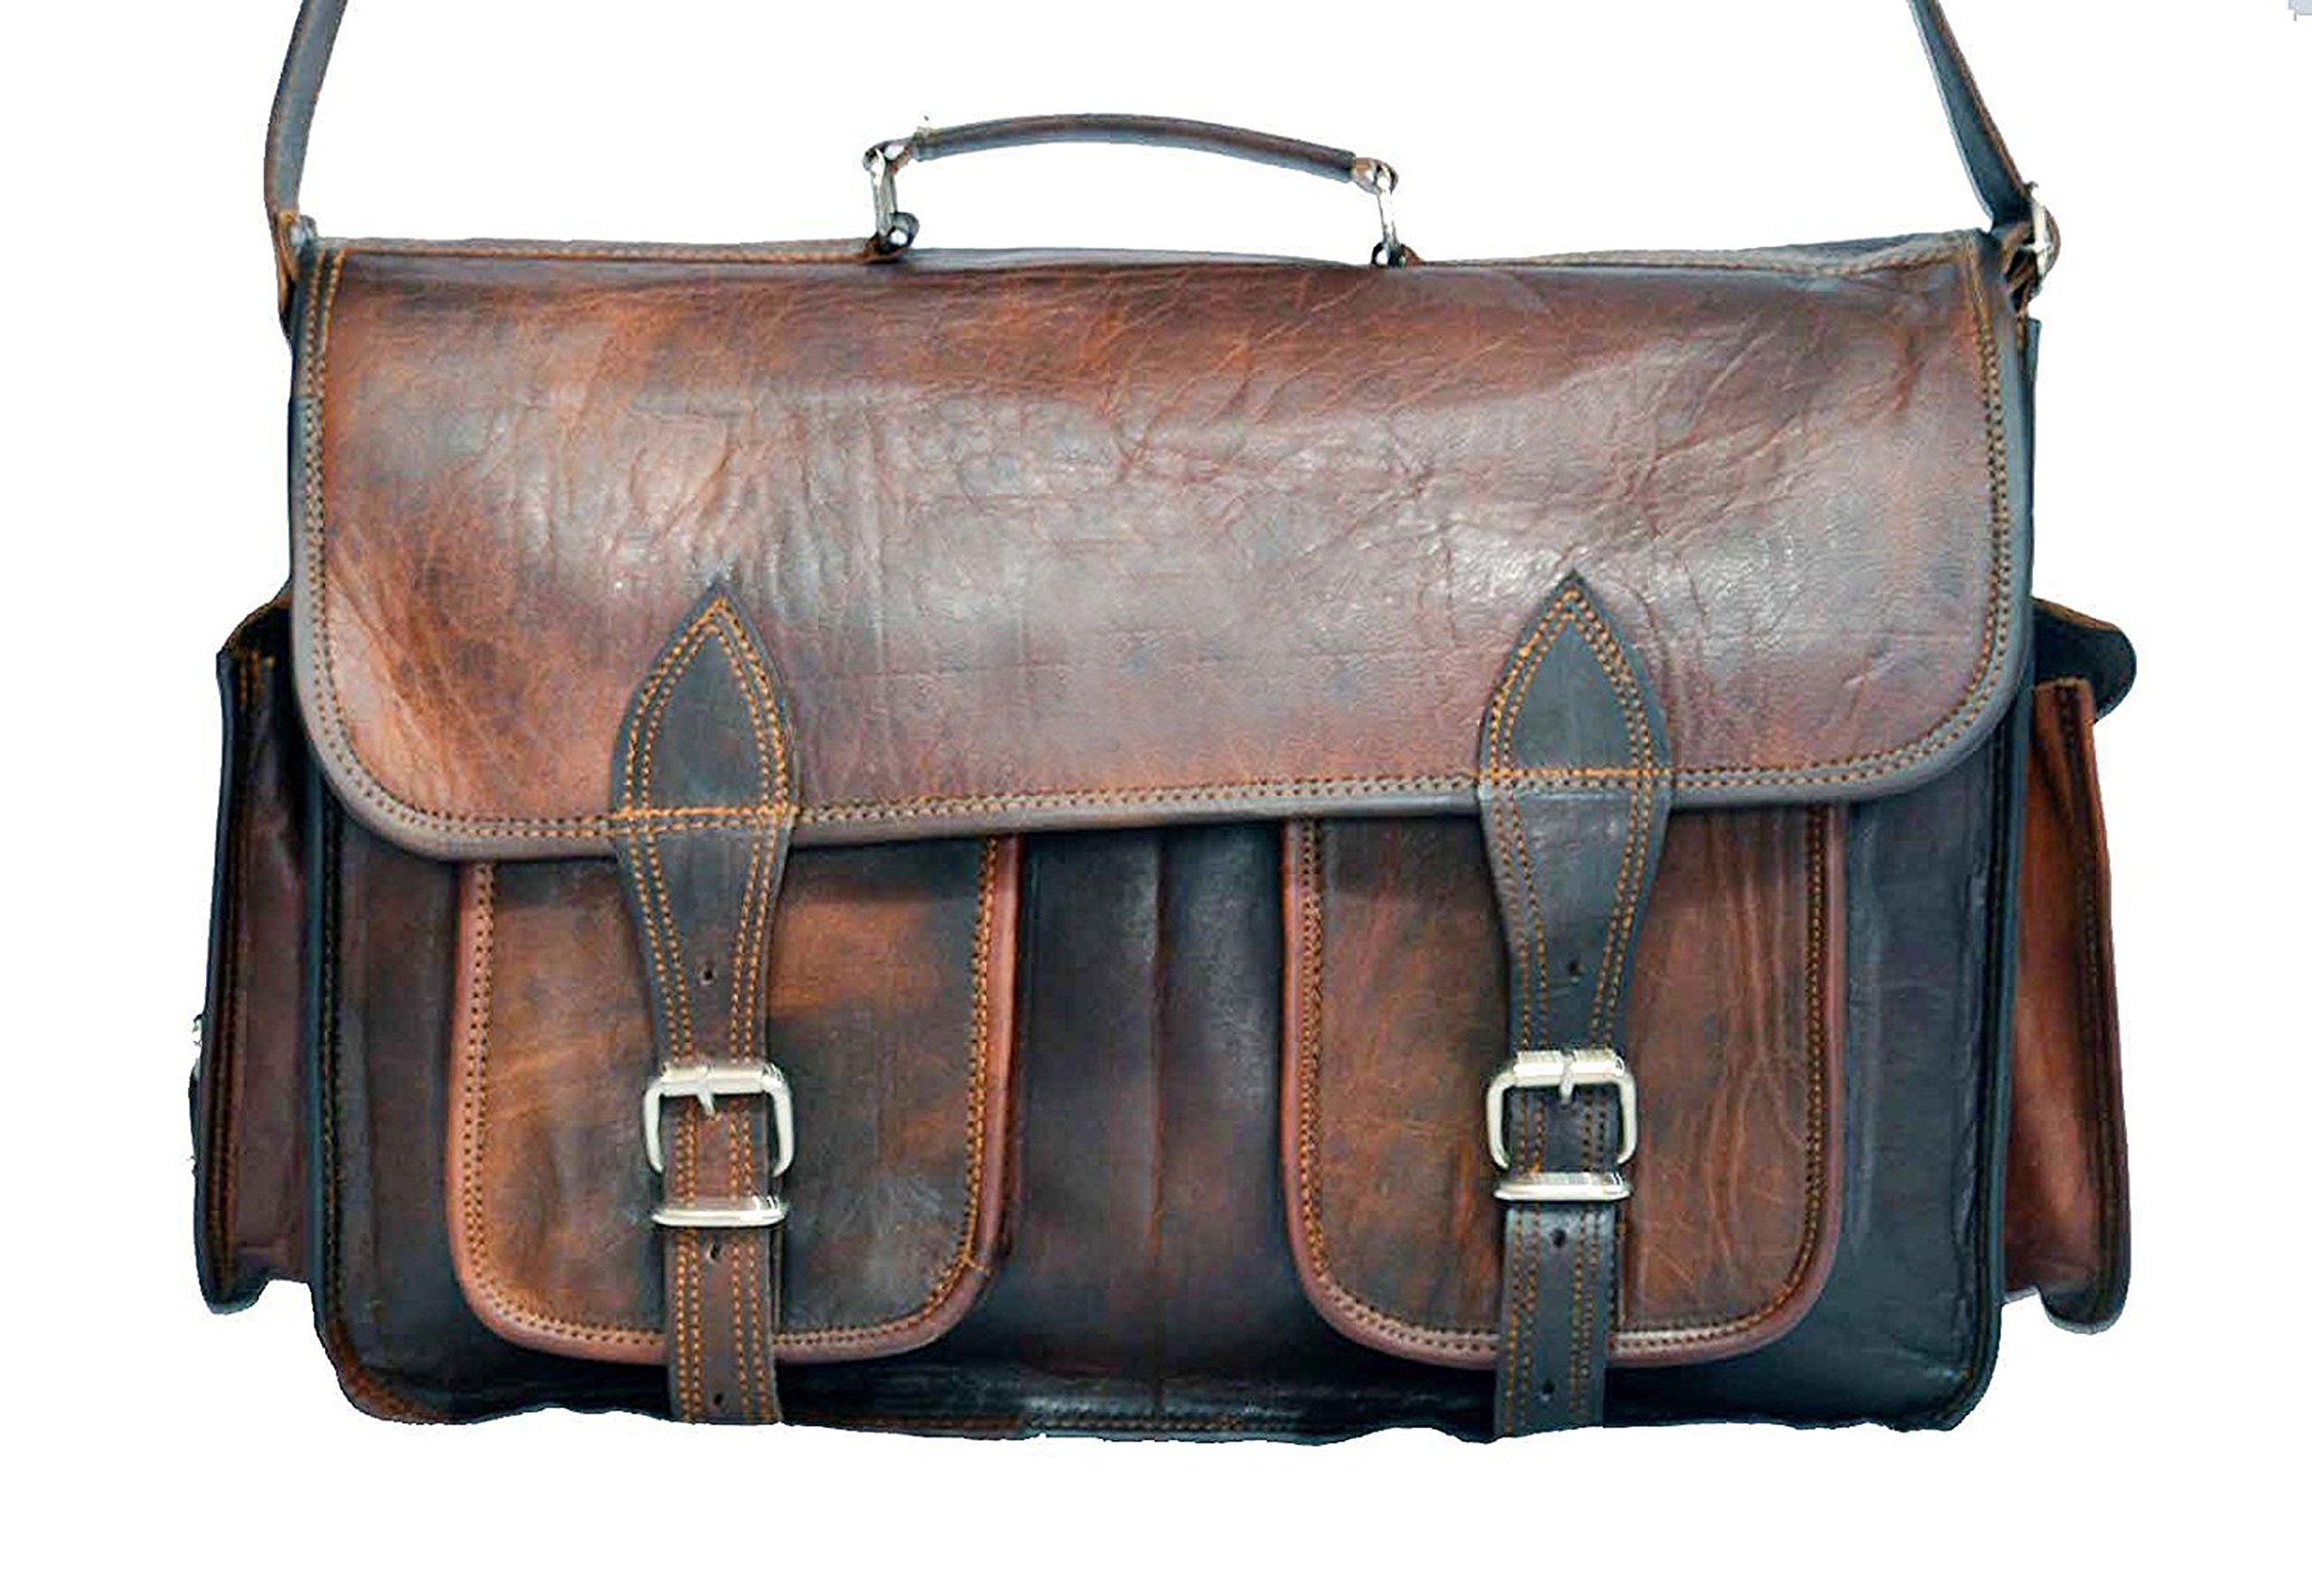 Leather Handmade Vintage Style Camera Bag/ Messenger/ Camera Bag Messenger Bag Laptop Bag